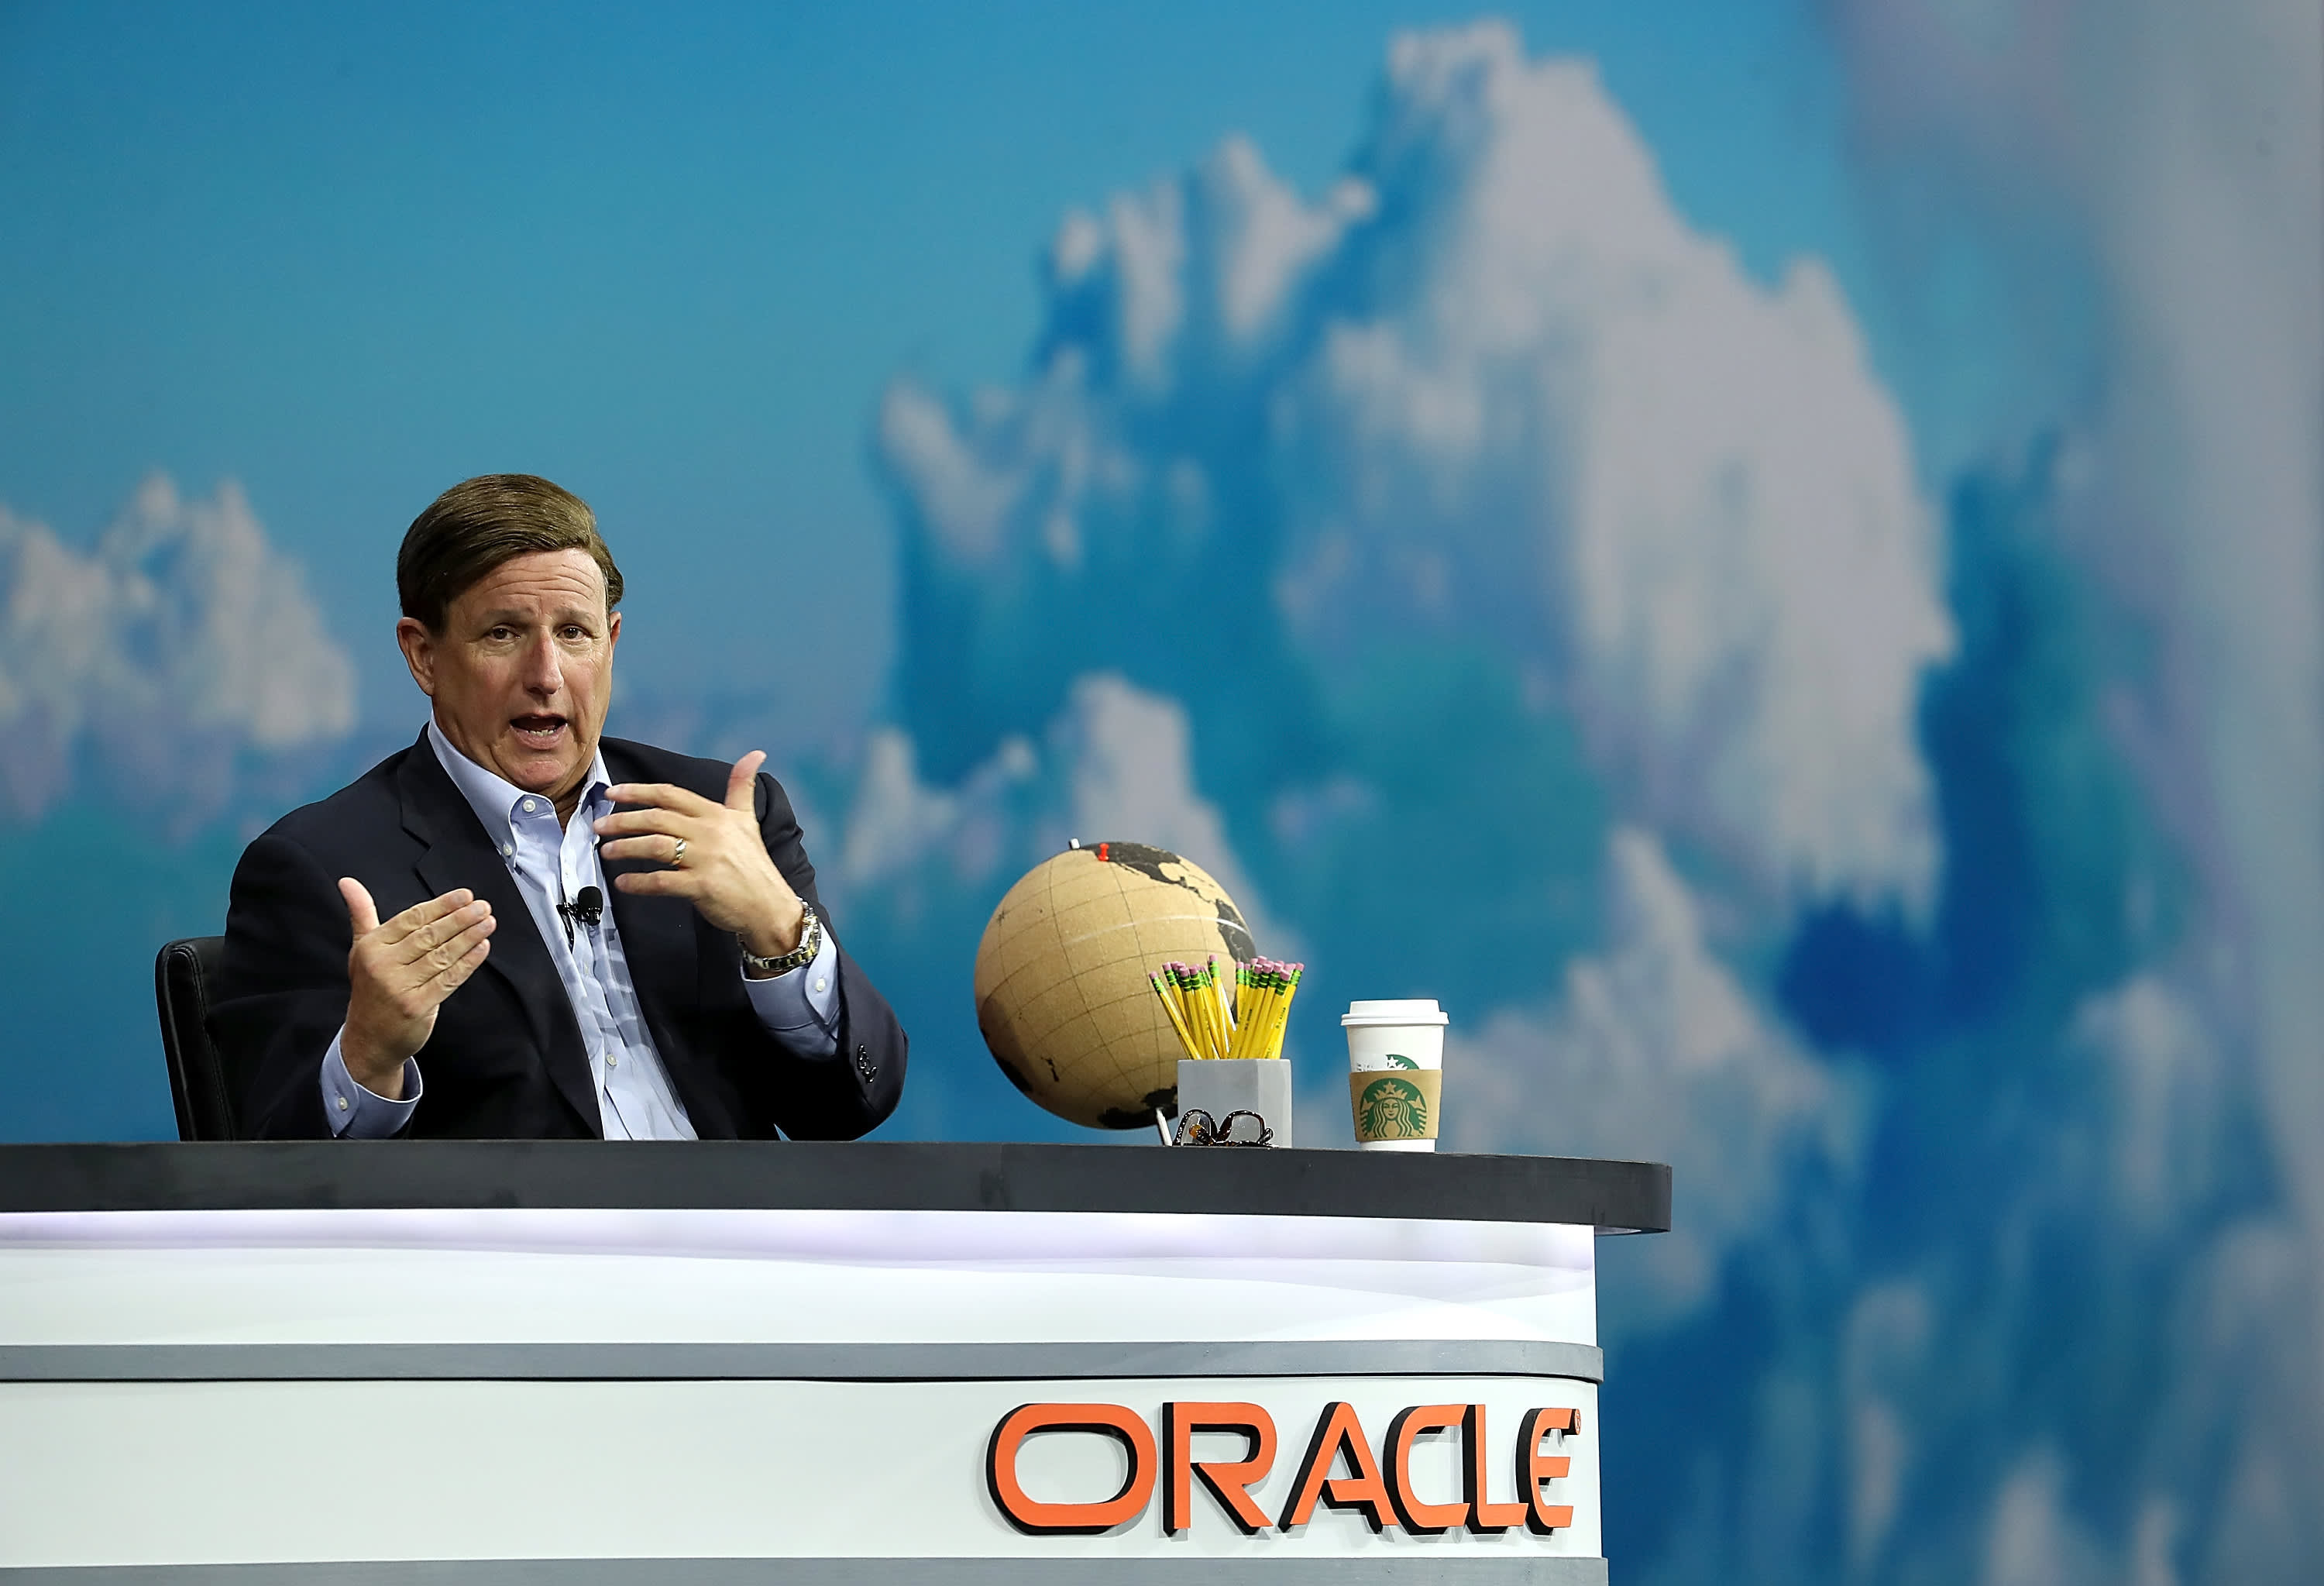 GS: Oracle CEO Mark Hurd Addresses Annual OpenWorld Conference